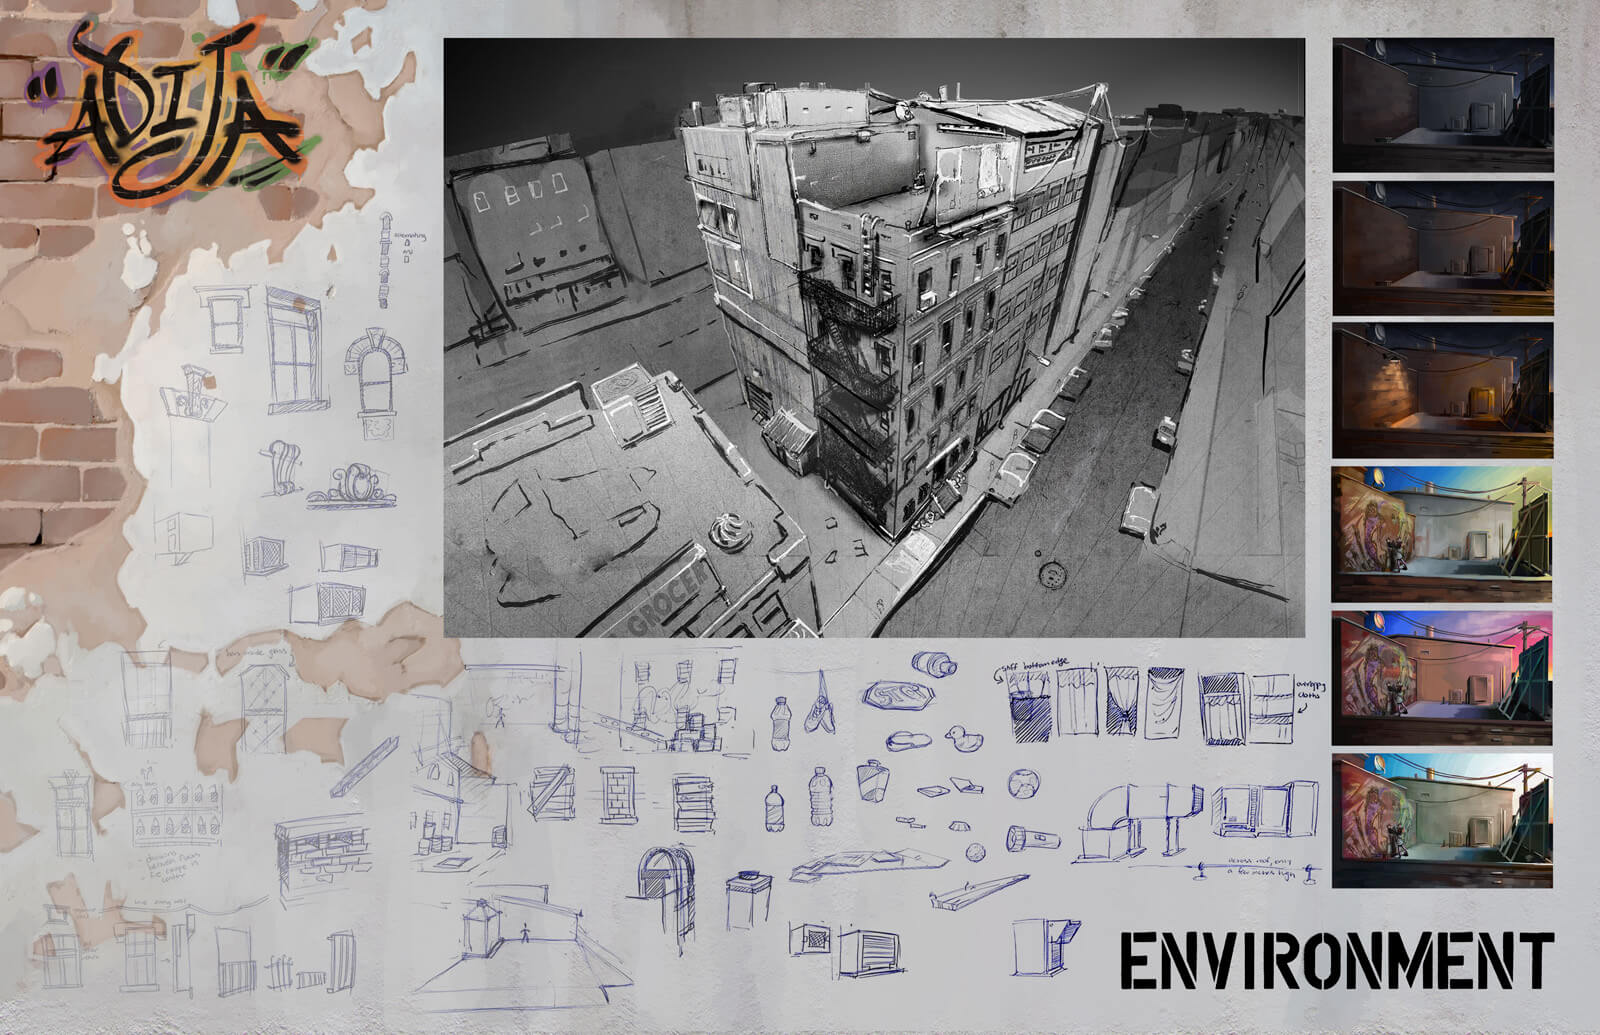 Environmental design sheet showing rough sketches of the apartment building exterior seen in the film Adija